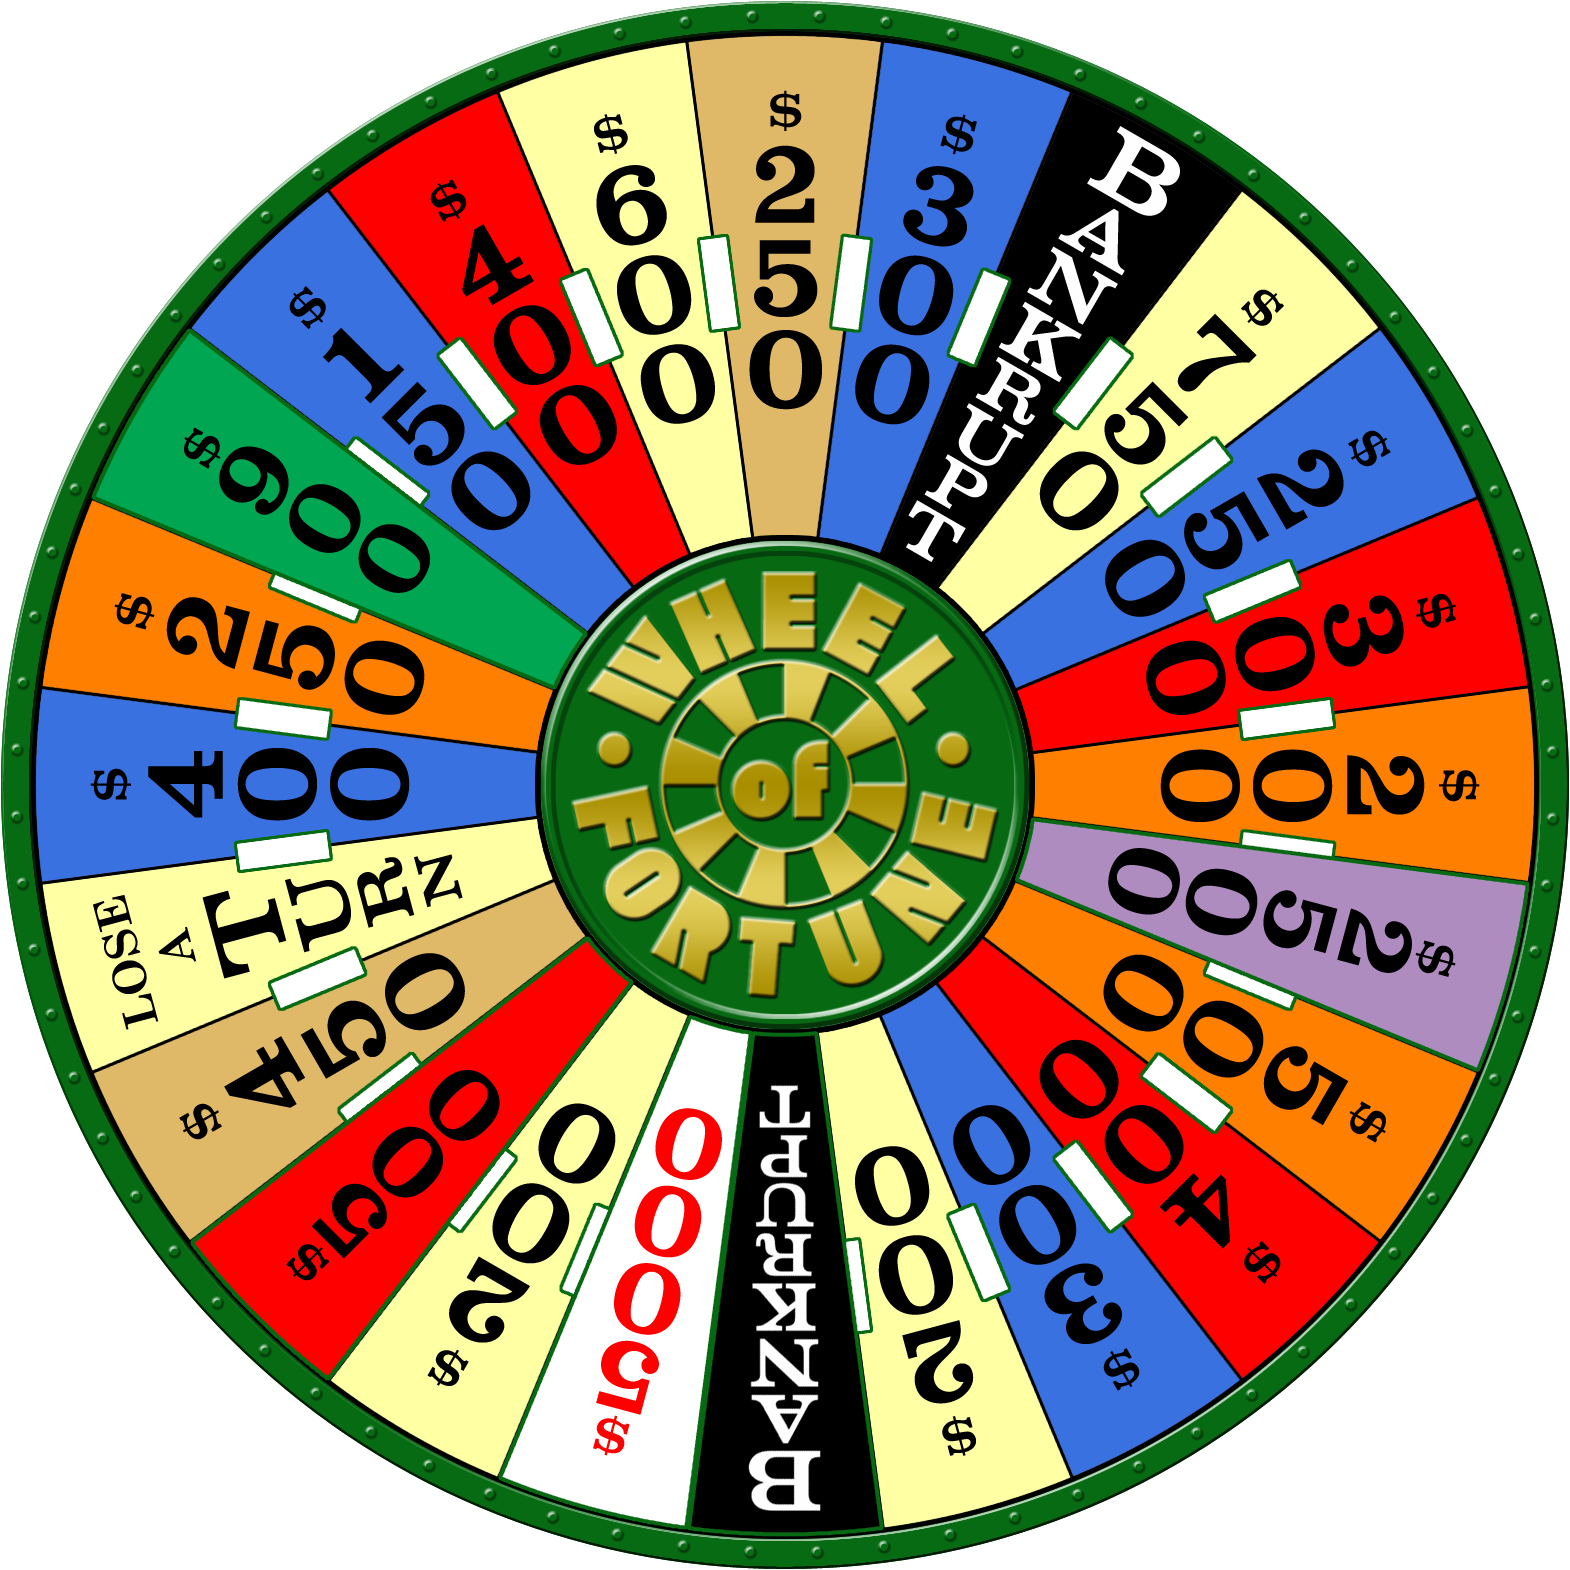 Pin By Patrick Conidi On Game Shows Wheel Of Fortune Game Show